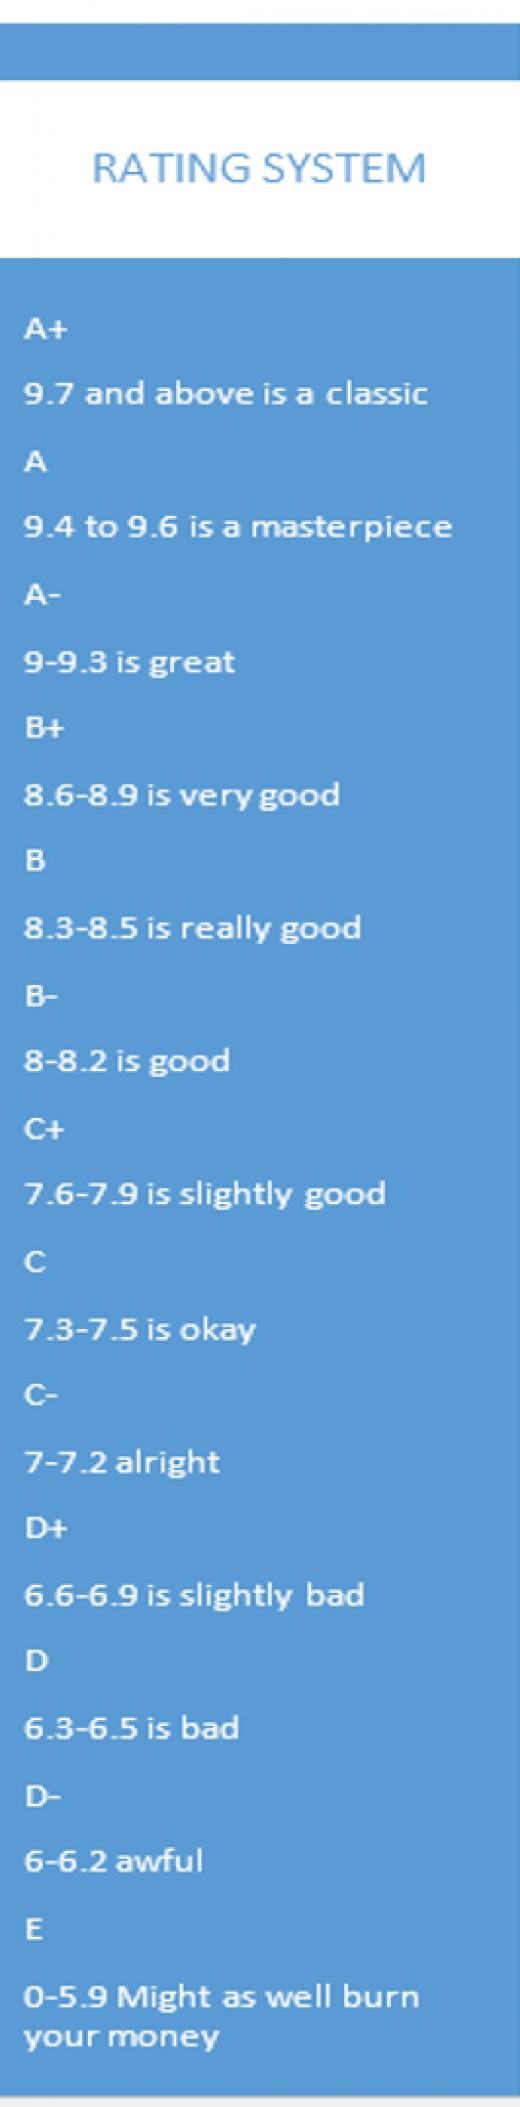 My rating system.